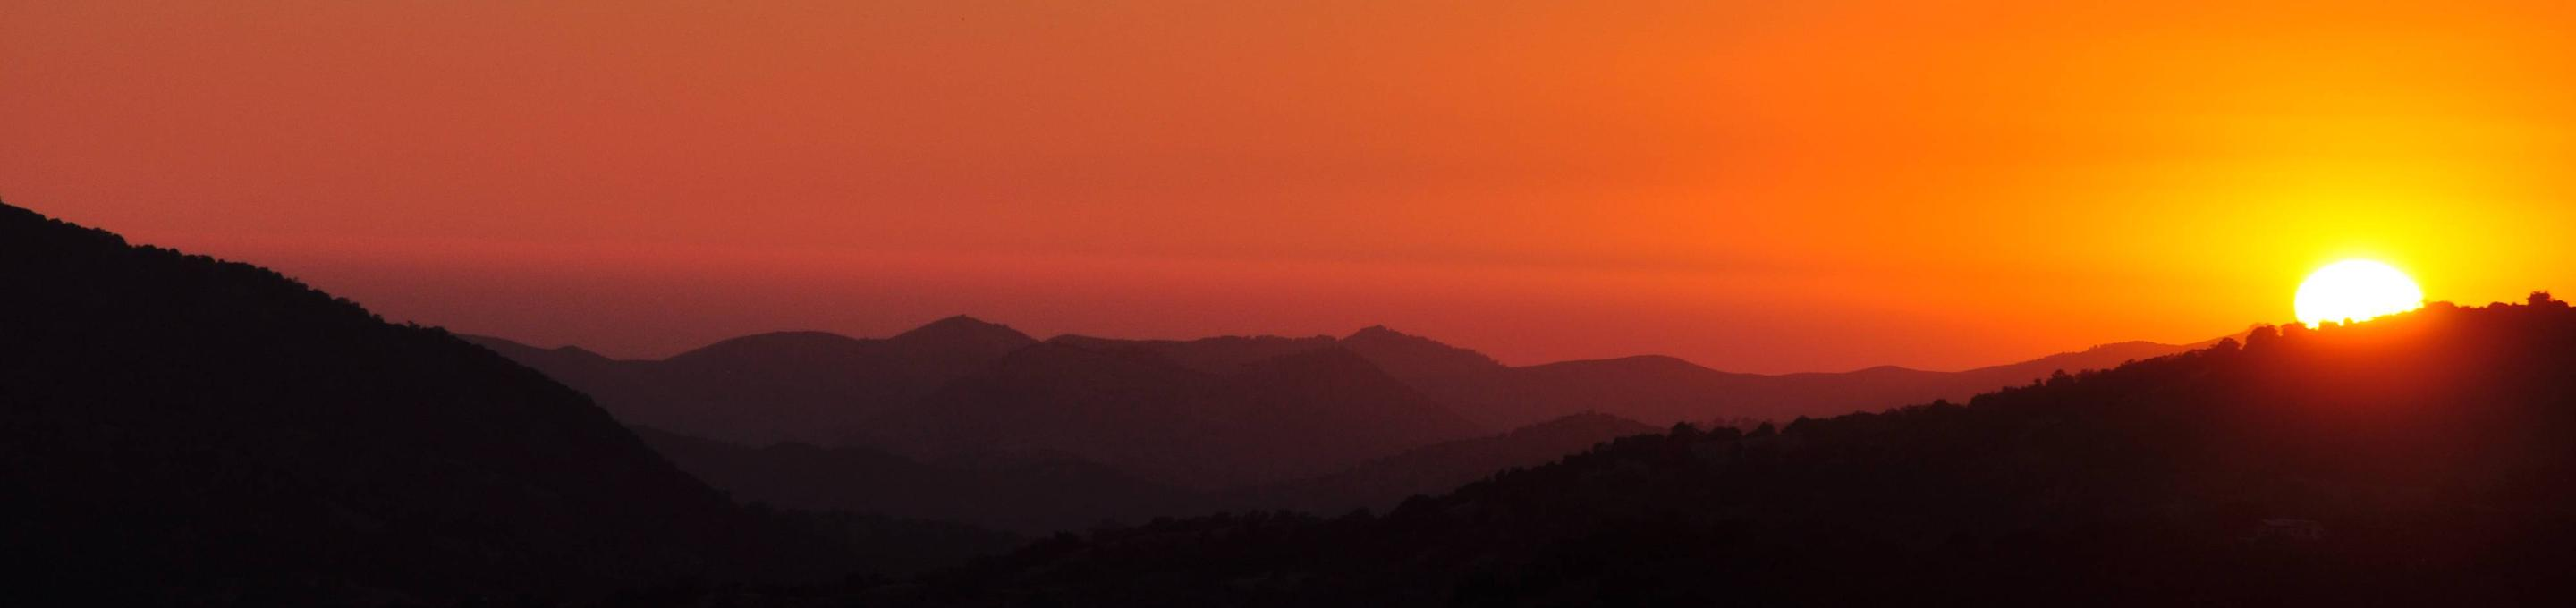 Sunset over the mountains in Sequoia National ForestSunset in Sequoia National Forest